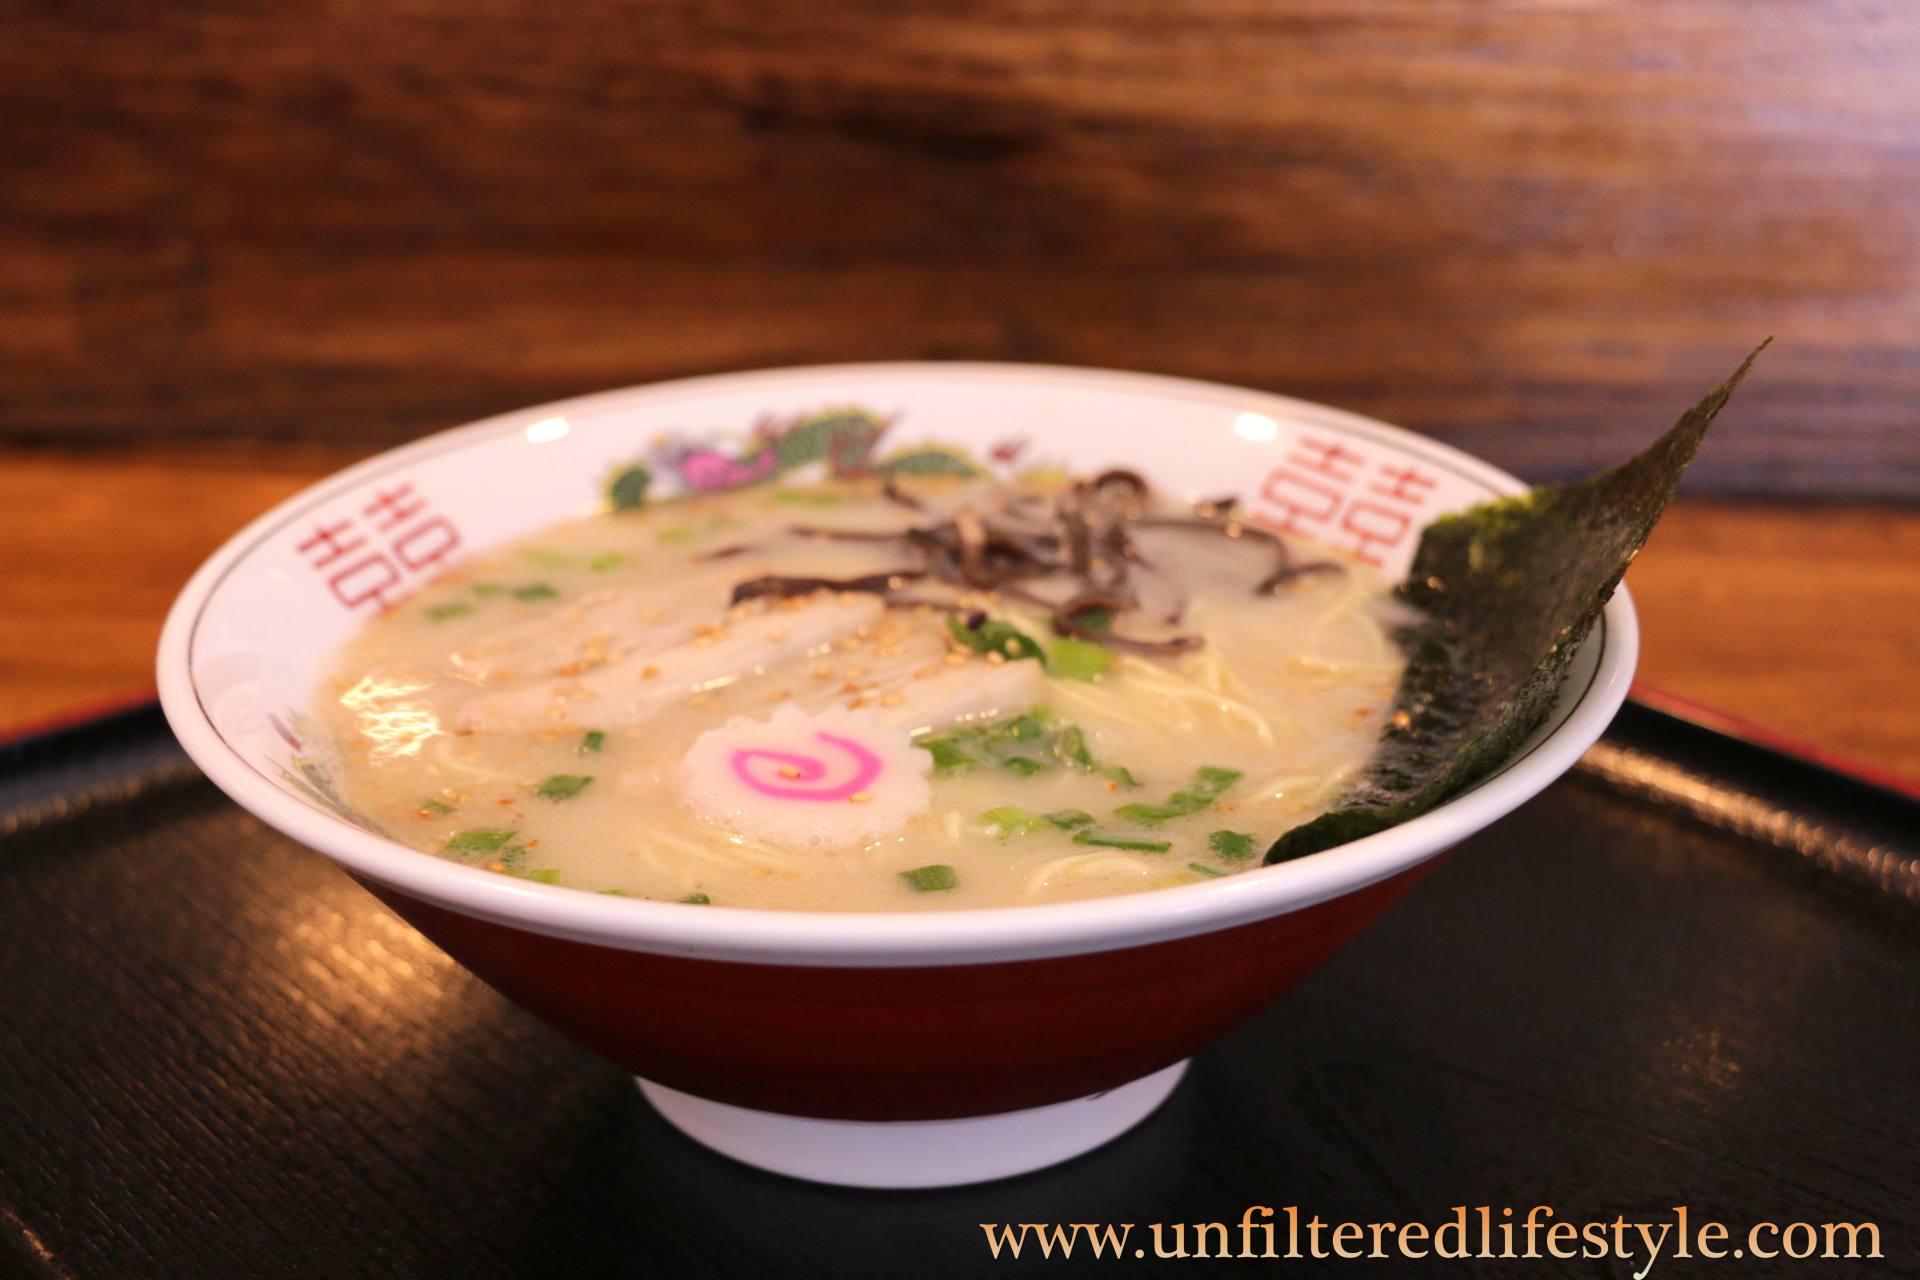 old school ramen, it has a rich, milky, pork-bone tonkotsu broth